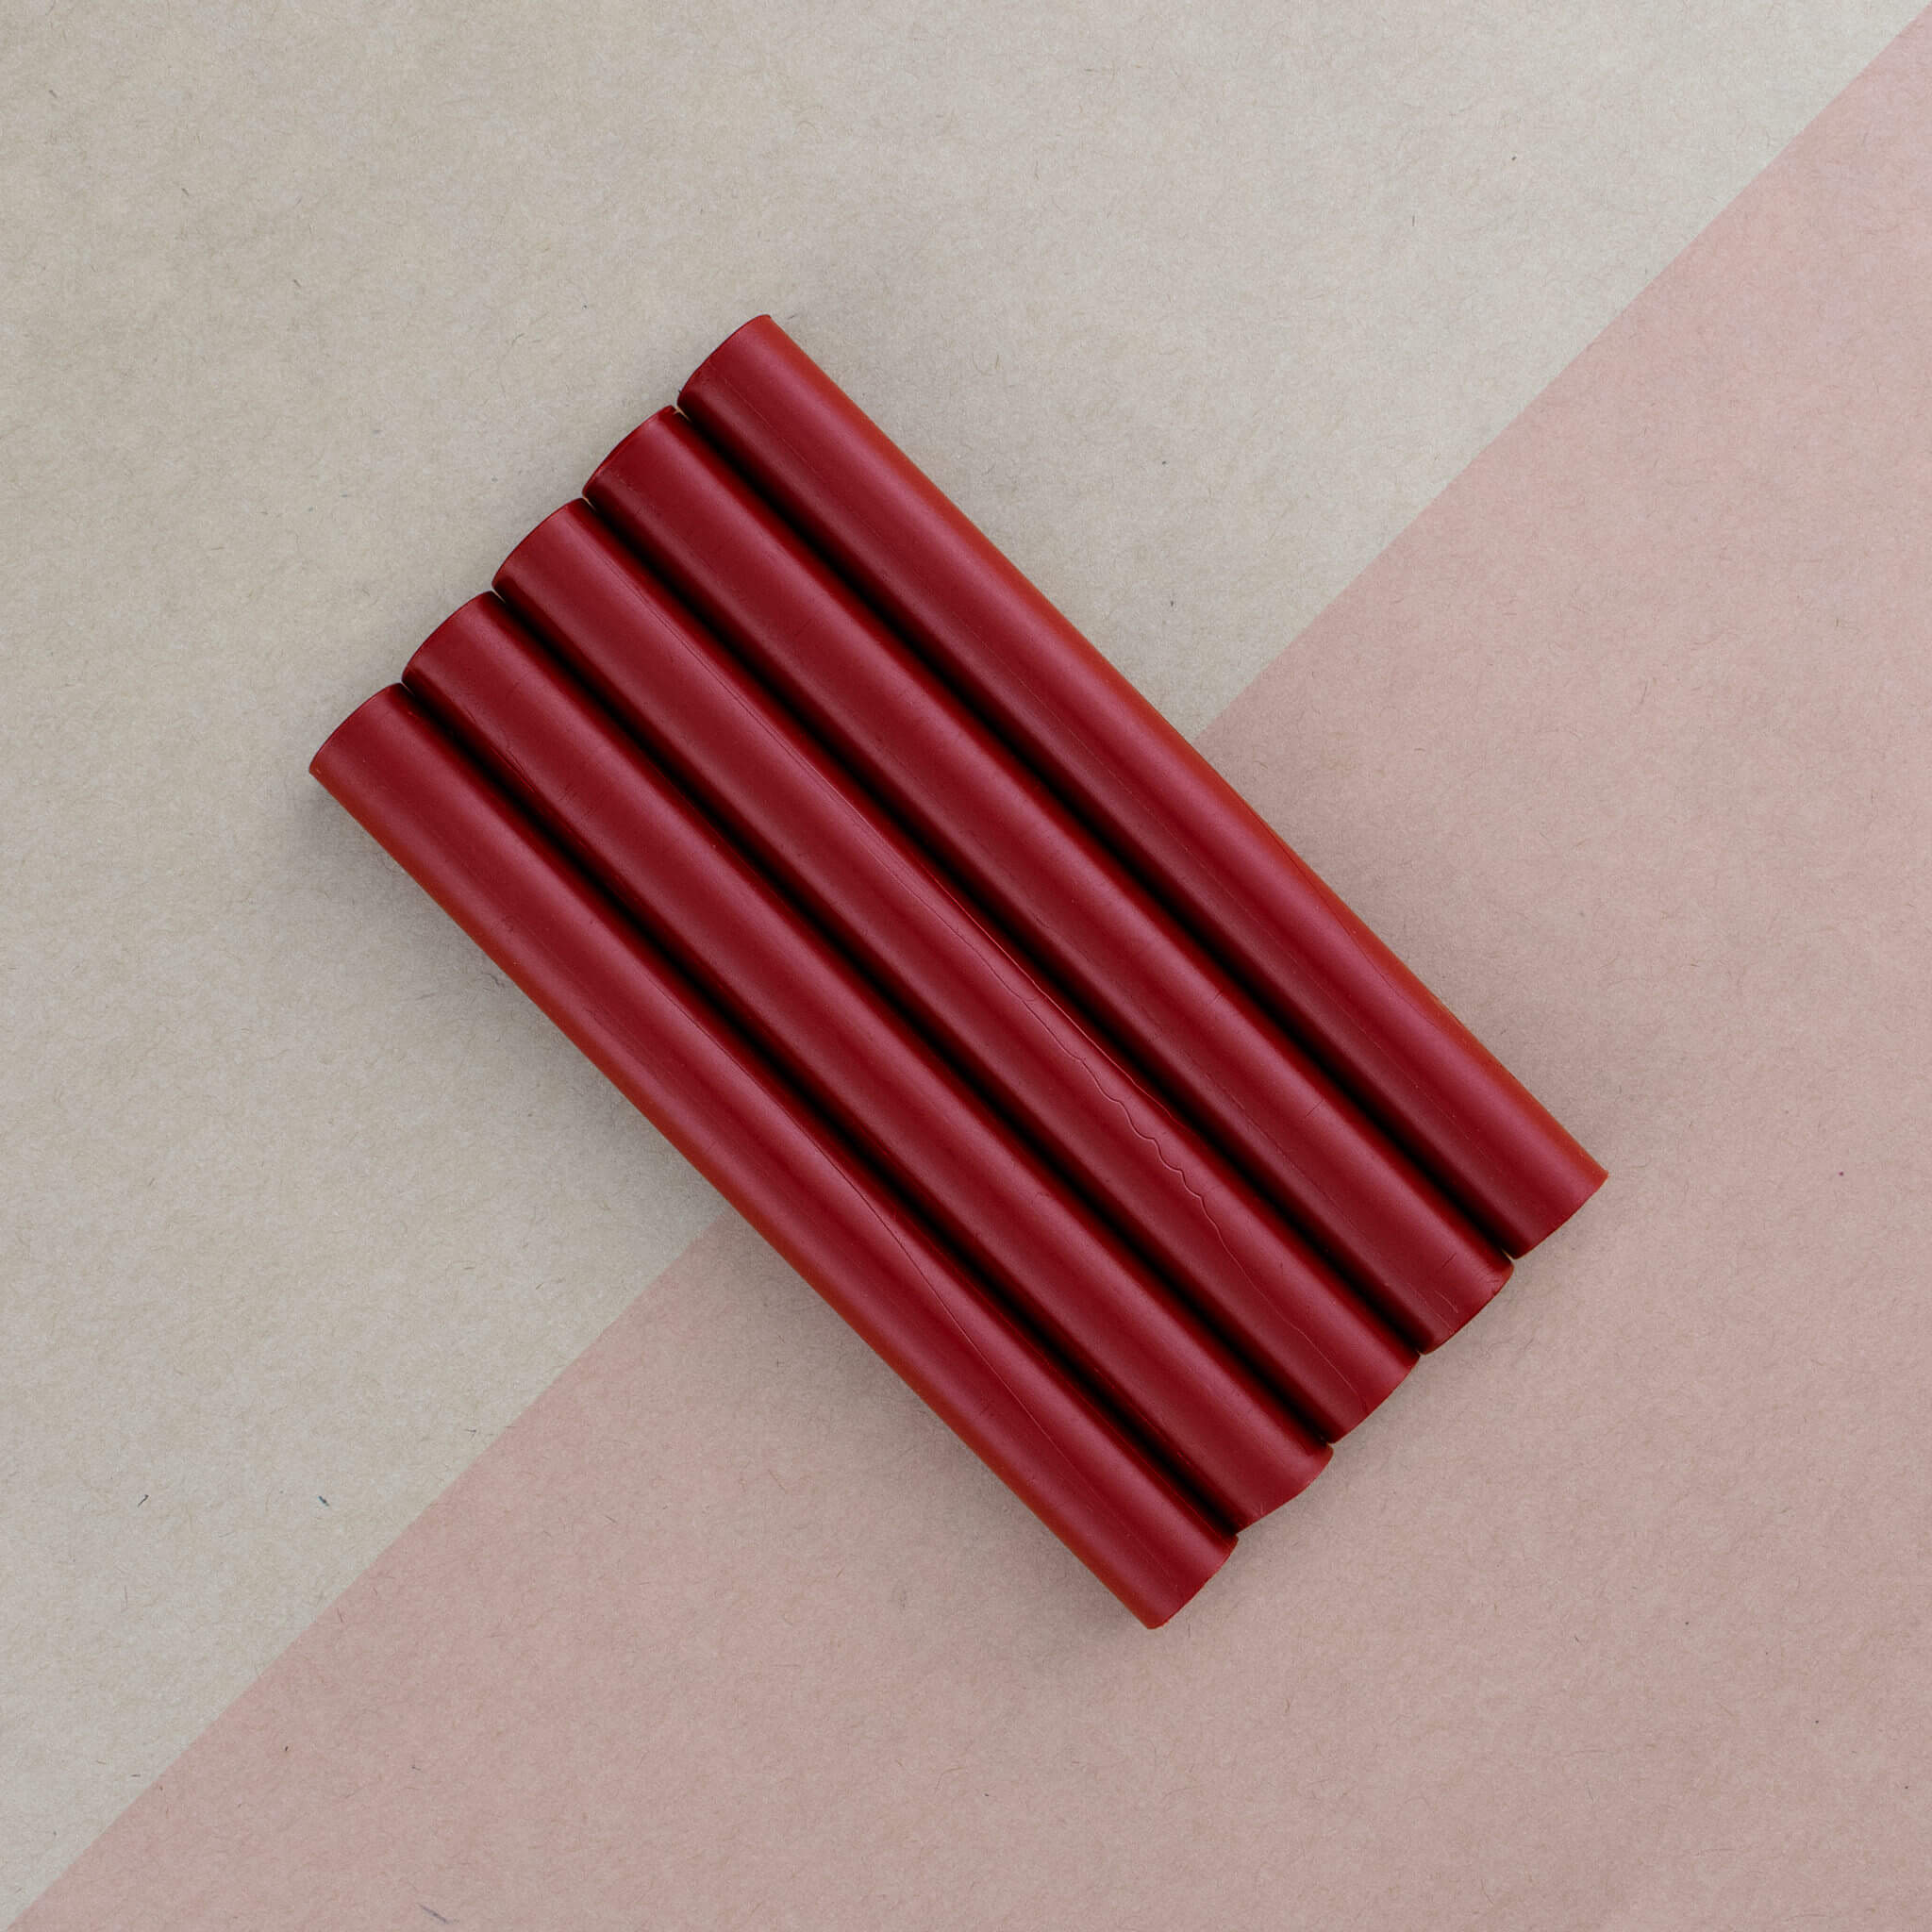 Flexible Sealing Wax Sticks